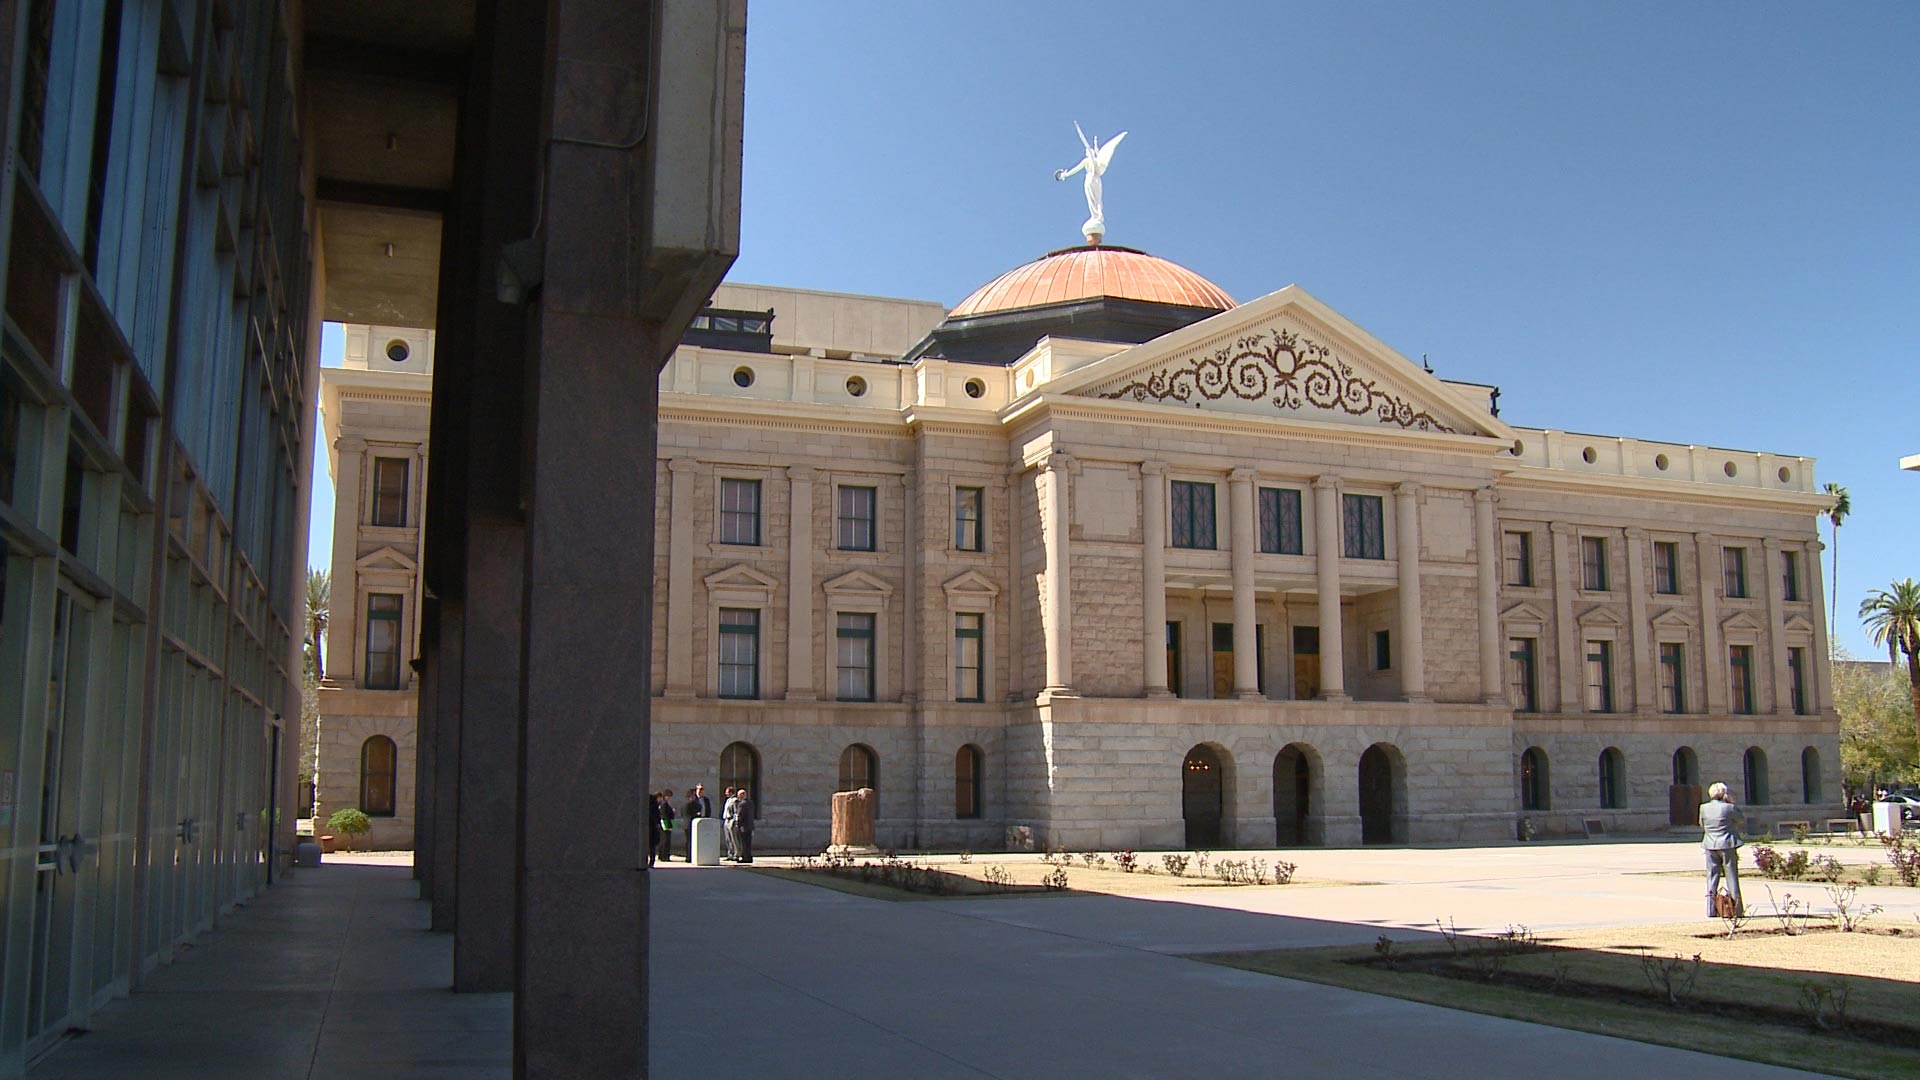 Arizona State Capitol building.